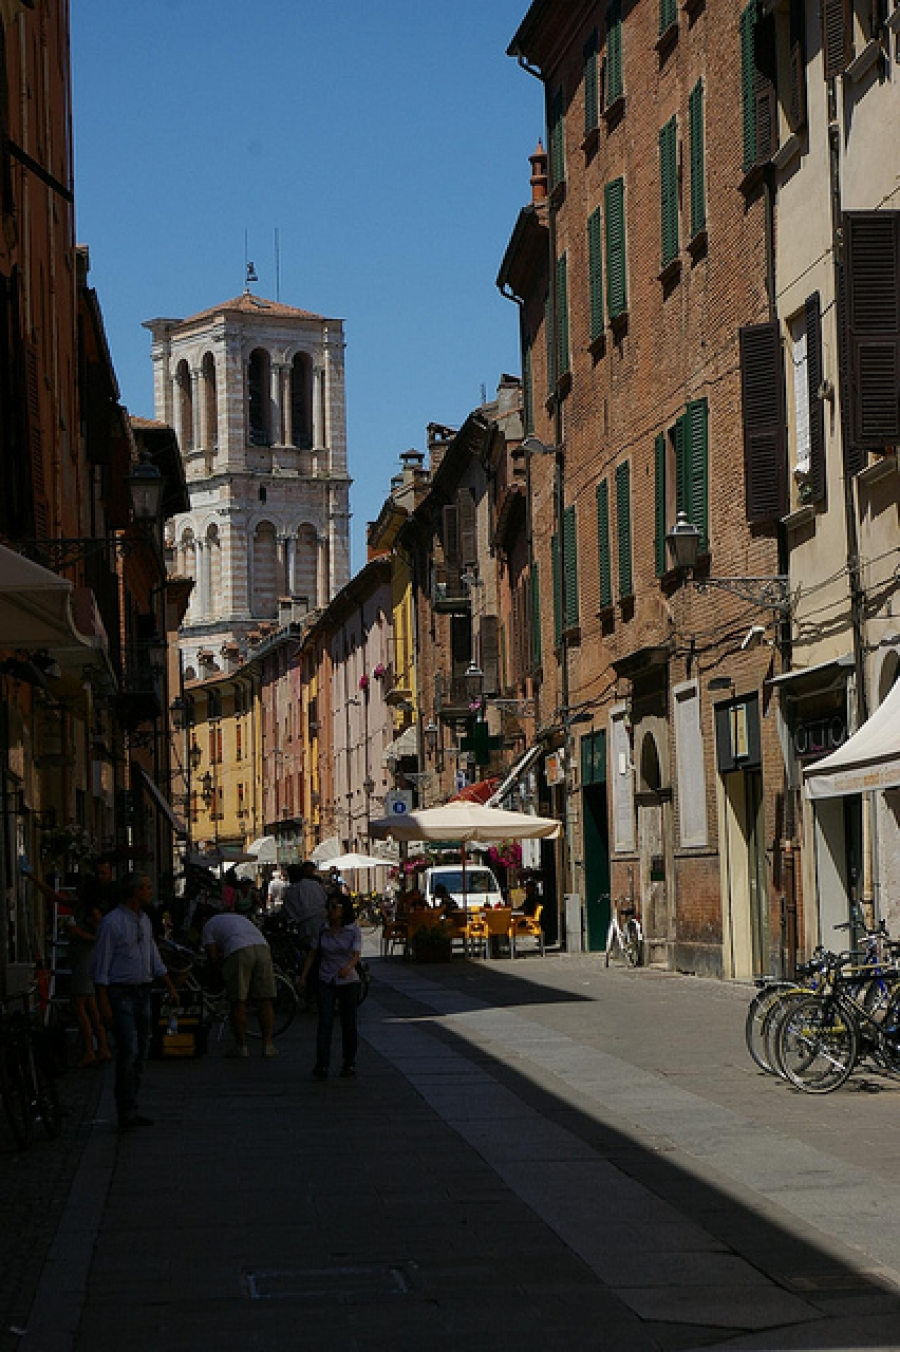 The Mole Diaries: Ferrara